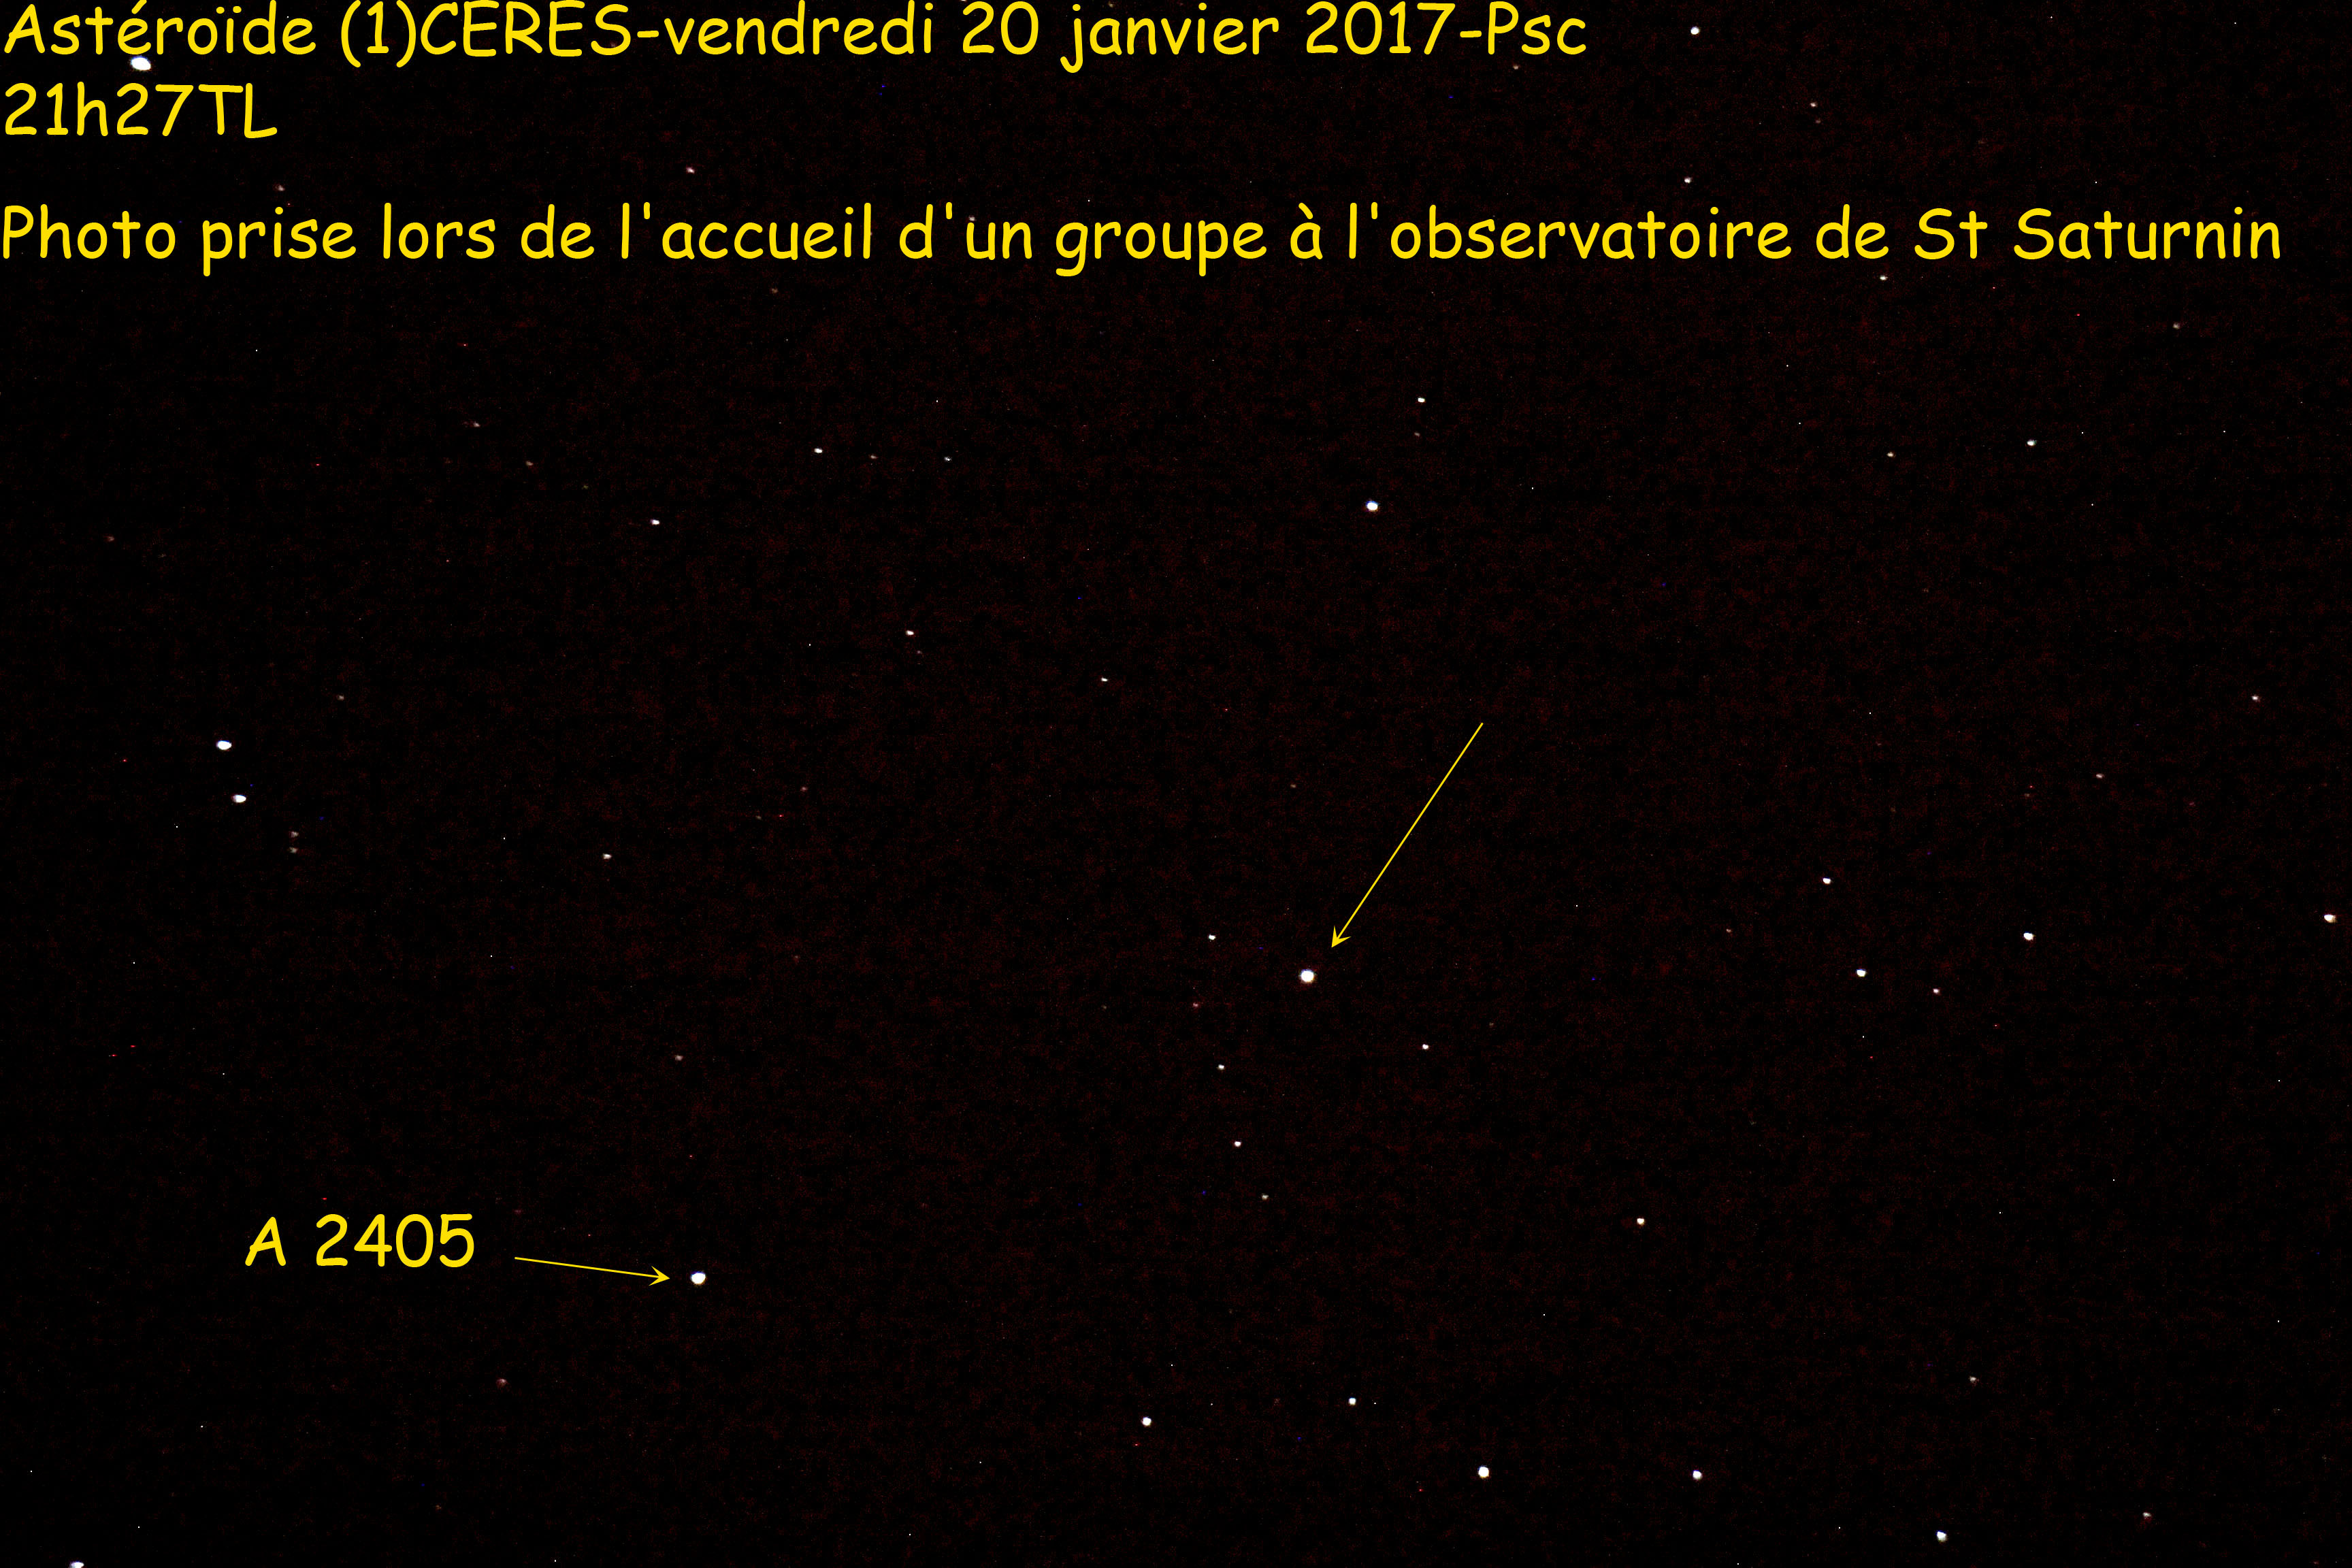 20170120-1Ceres-21h27-Psc-re-r-n-ss.jpg - 1003.73 kb